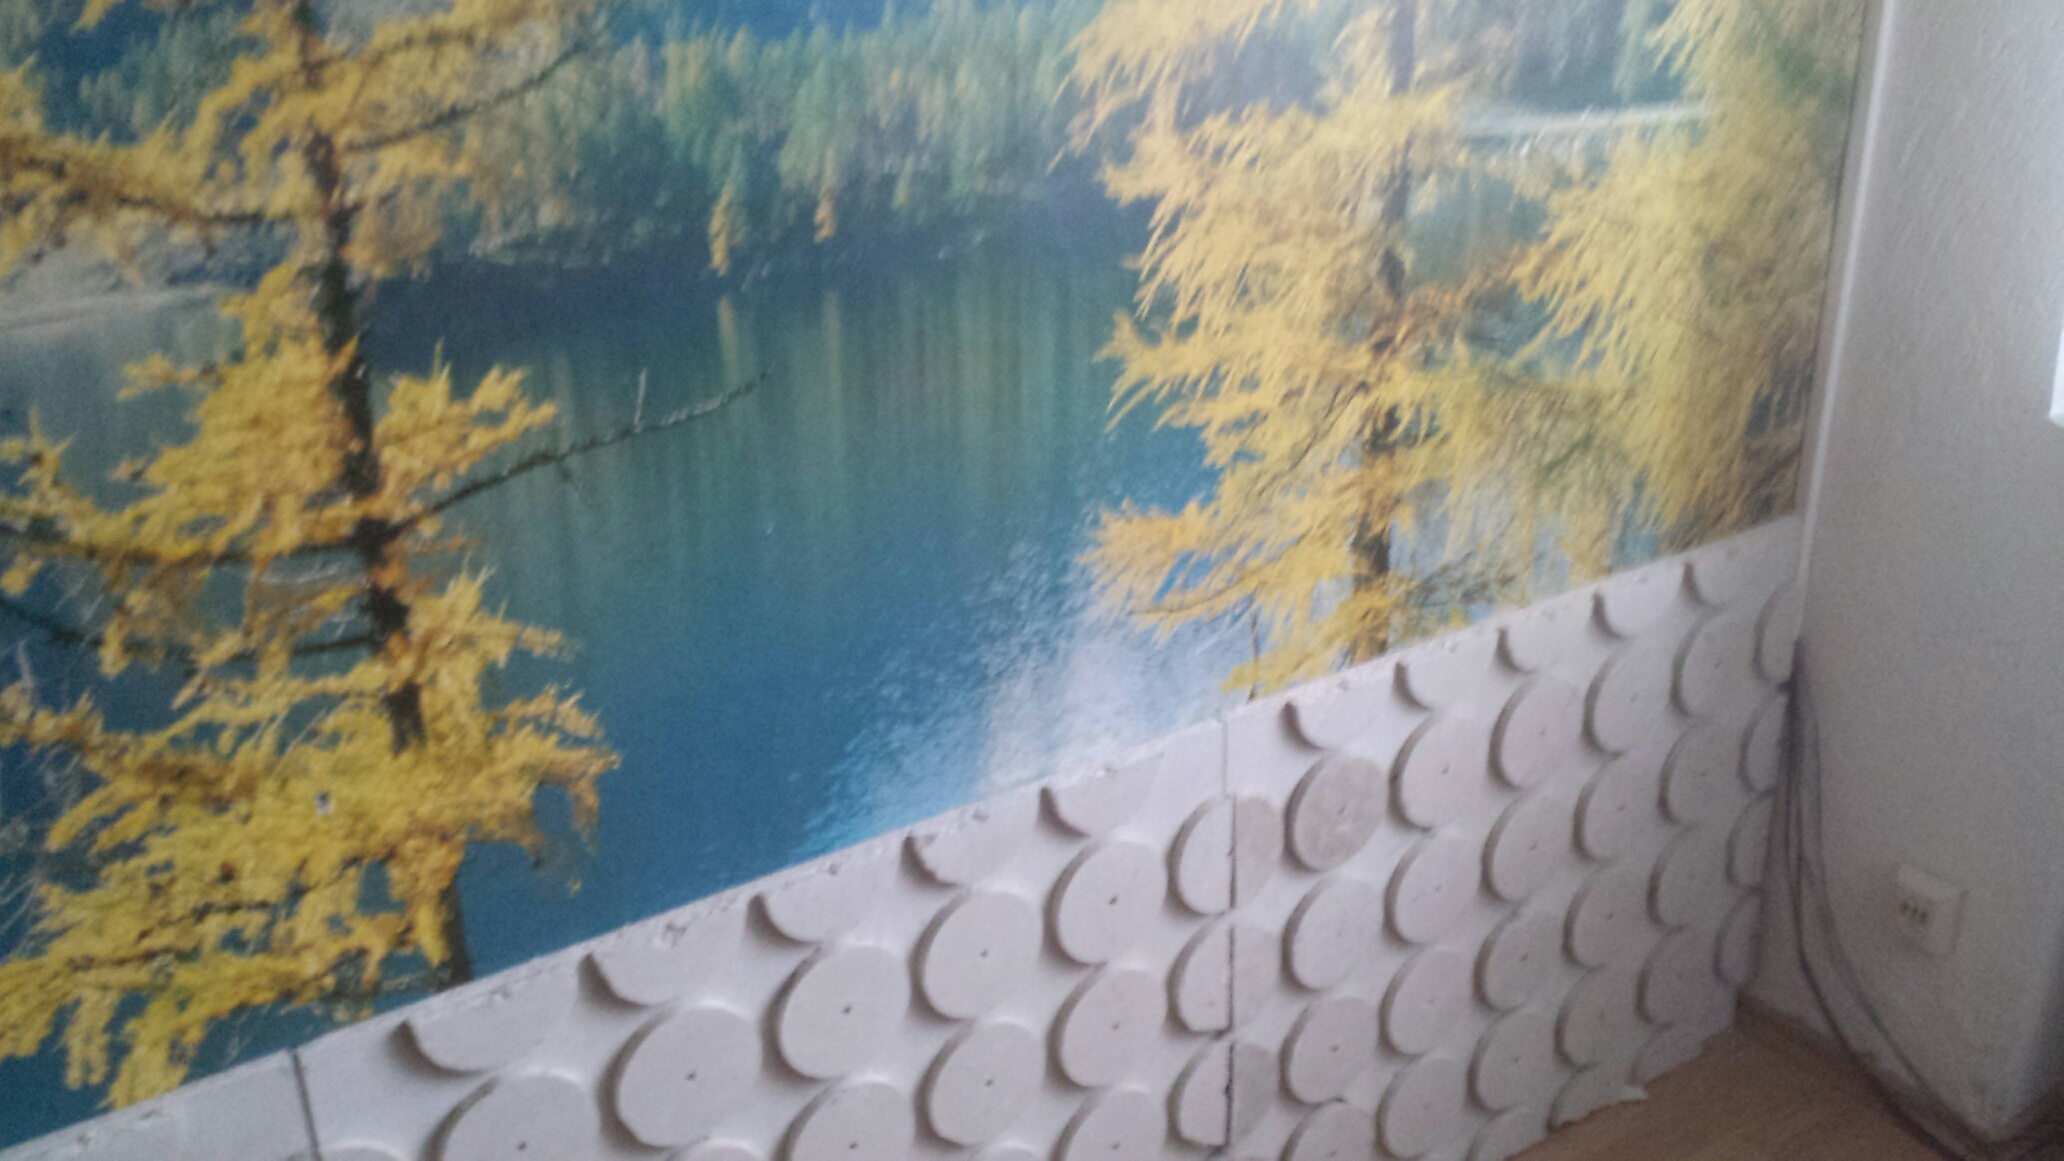 fussbodenheizung in k che strom oder trockenestrich haustechnikdialog. Black Bedroom Furniture Sets. Home Design Ideas